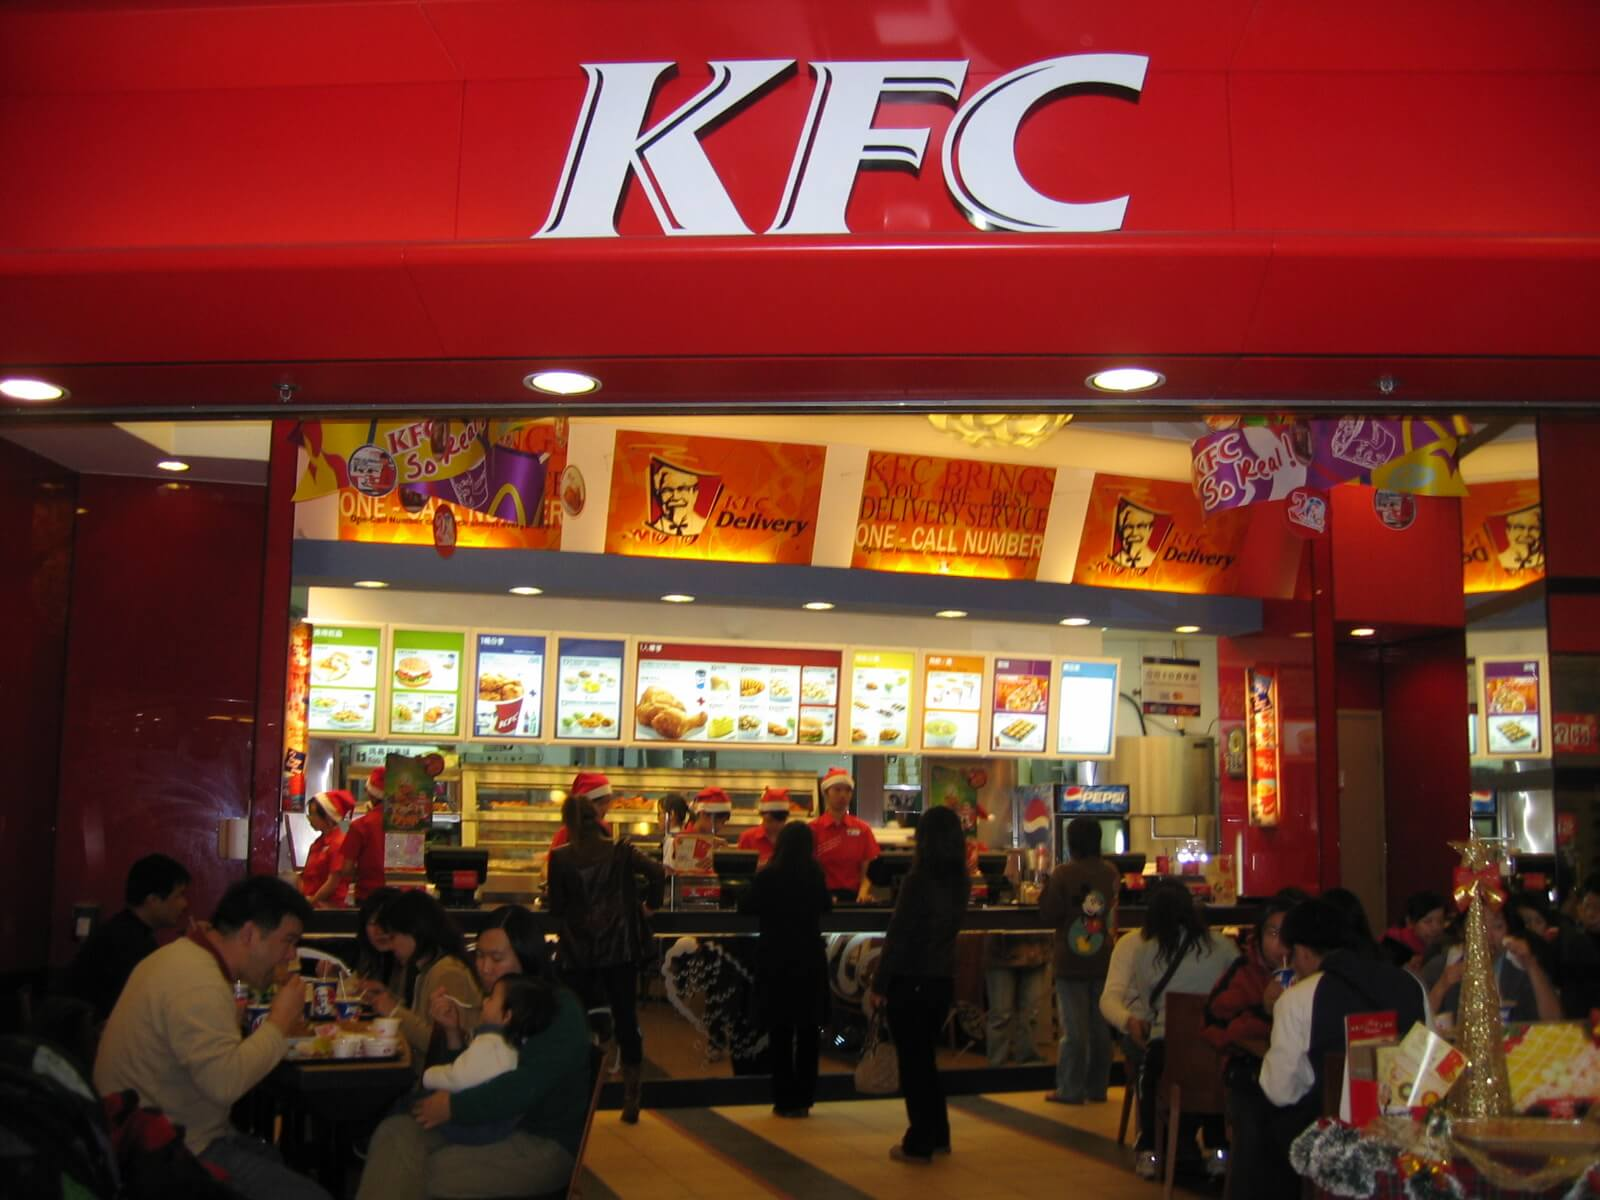 The kfc: human resource problem in china Case Study